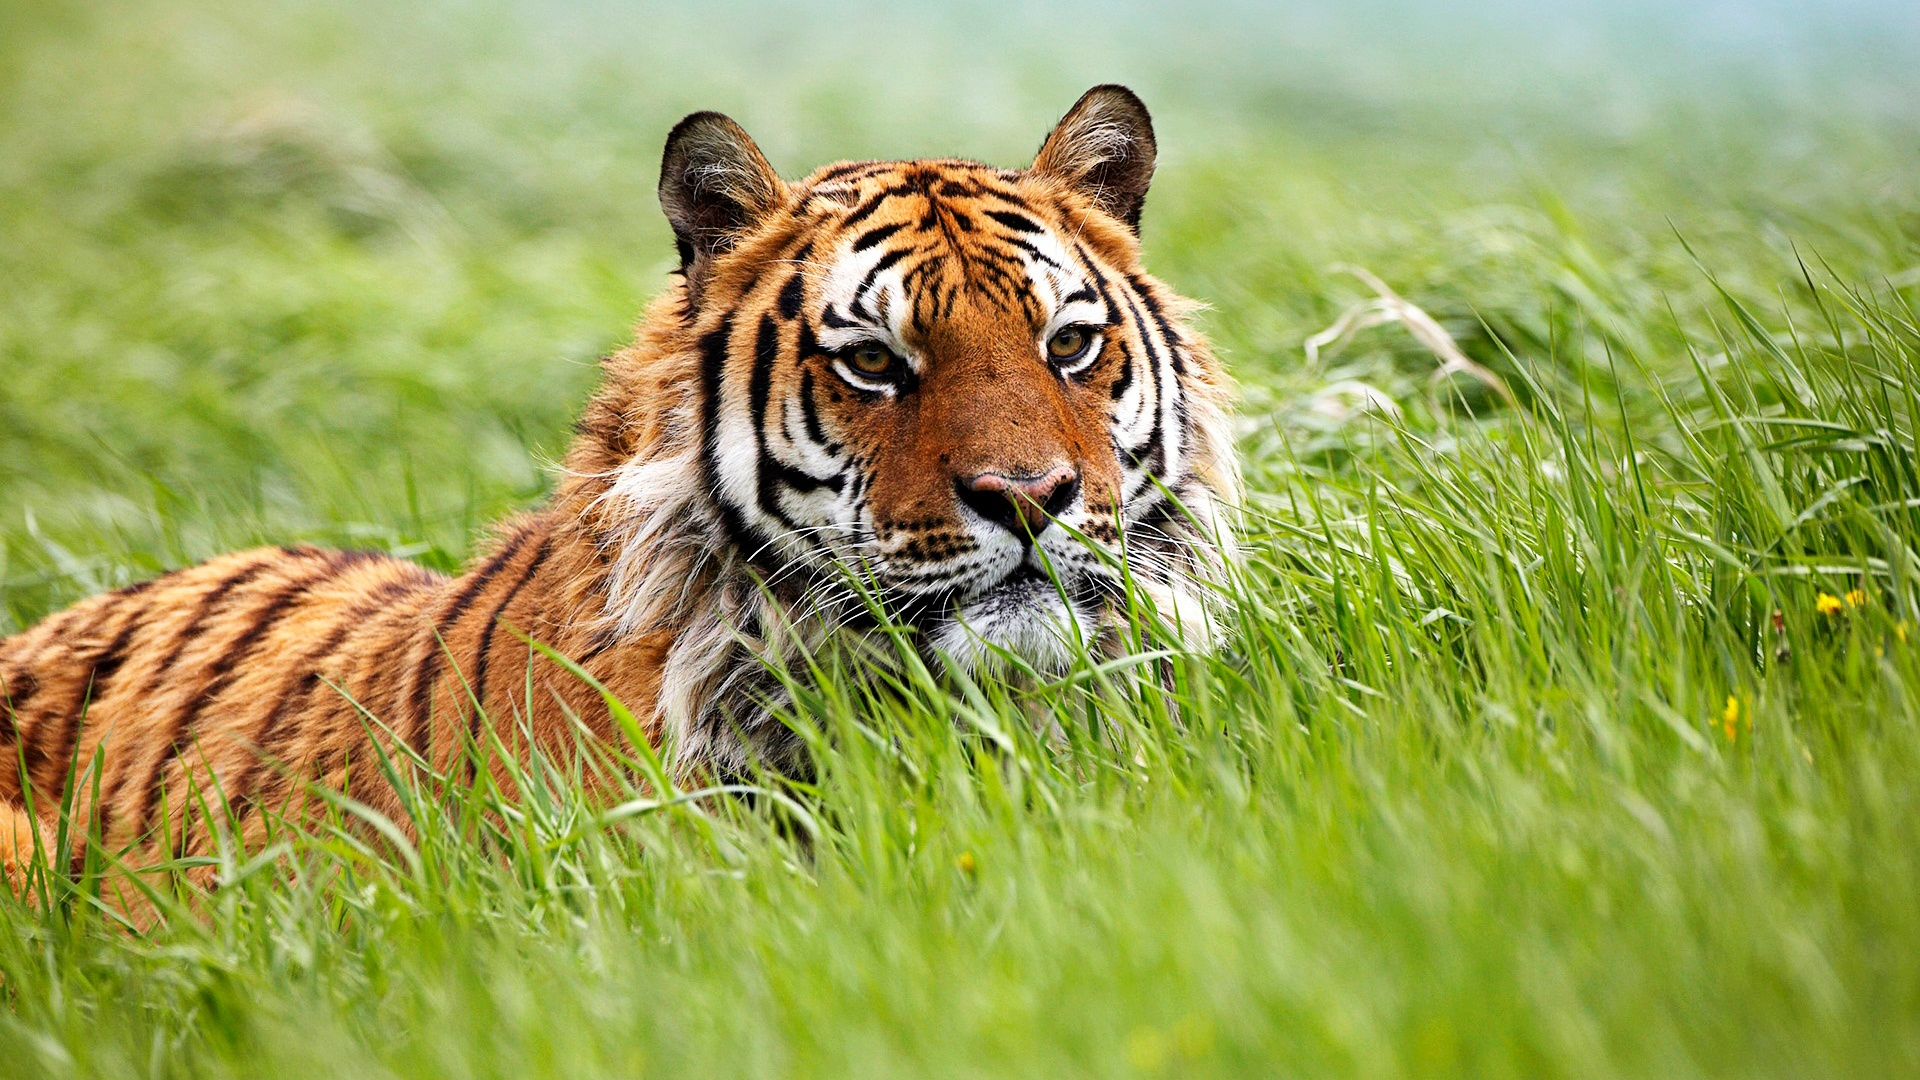 tiger wallpapers in hd